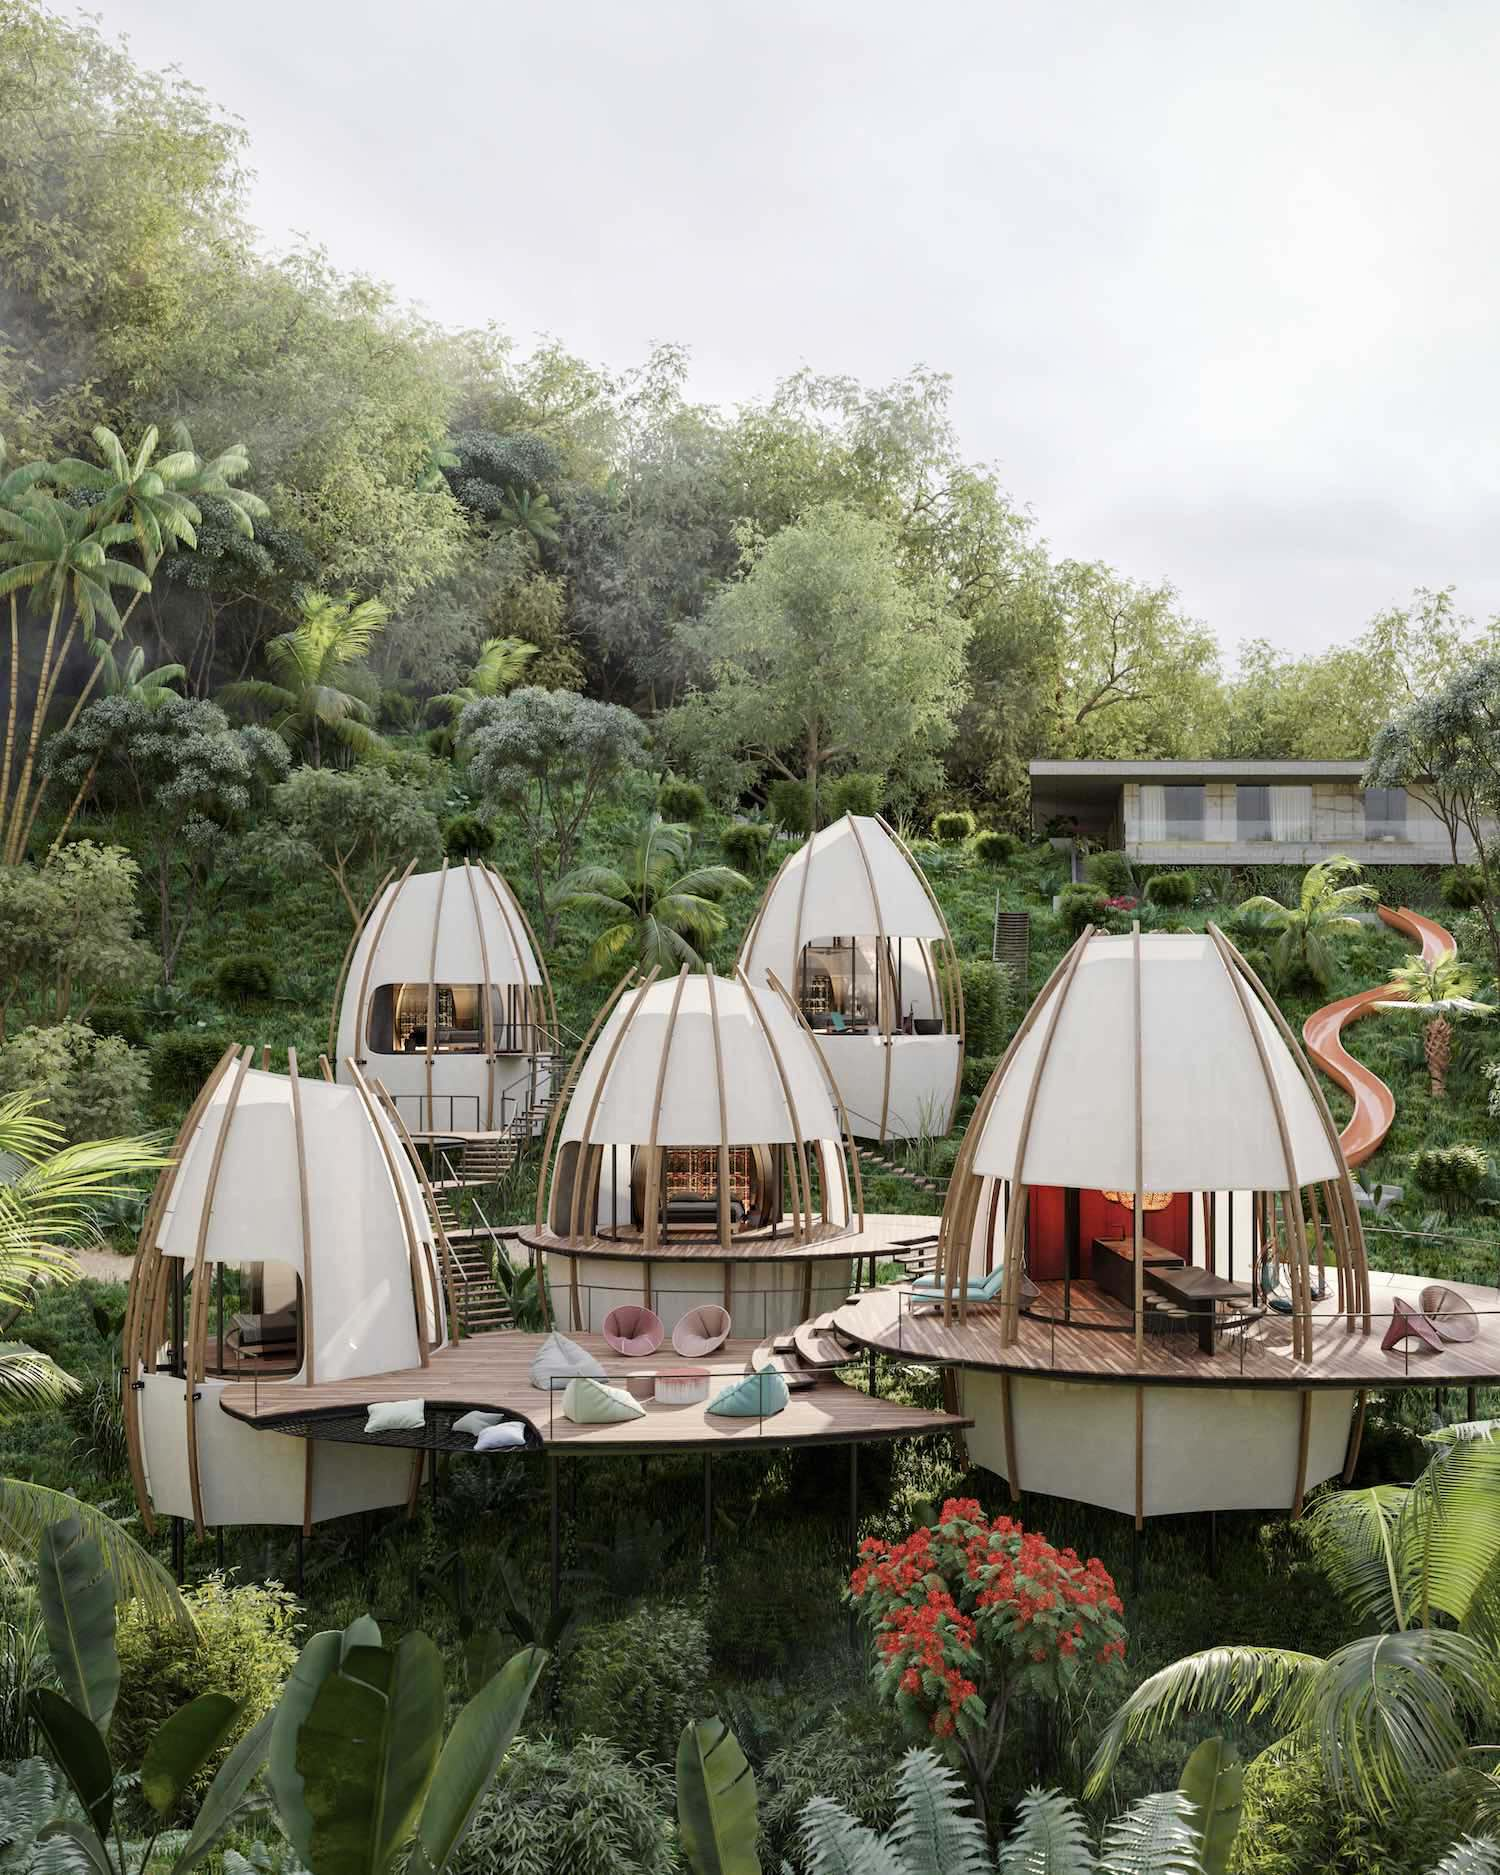 coco shaped villa resort made of wooden materials in the tropical forest